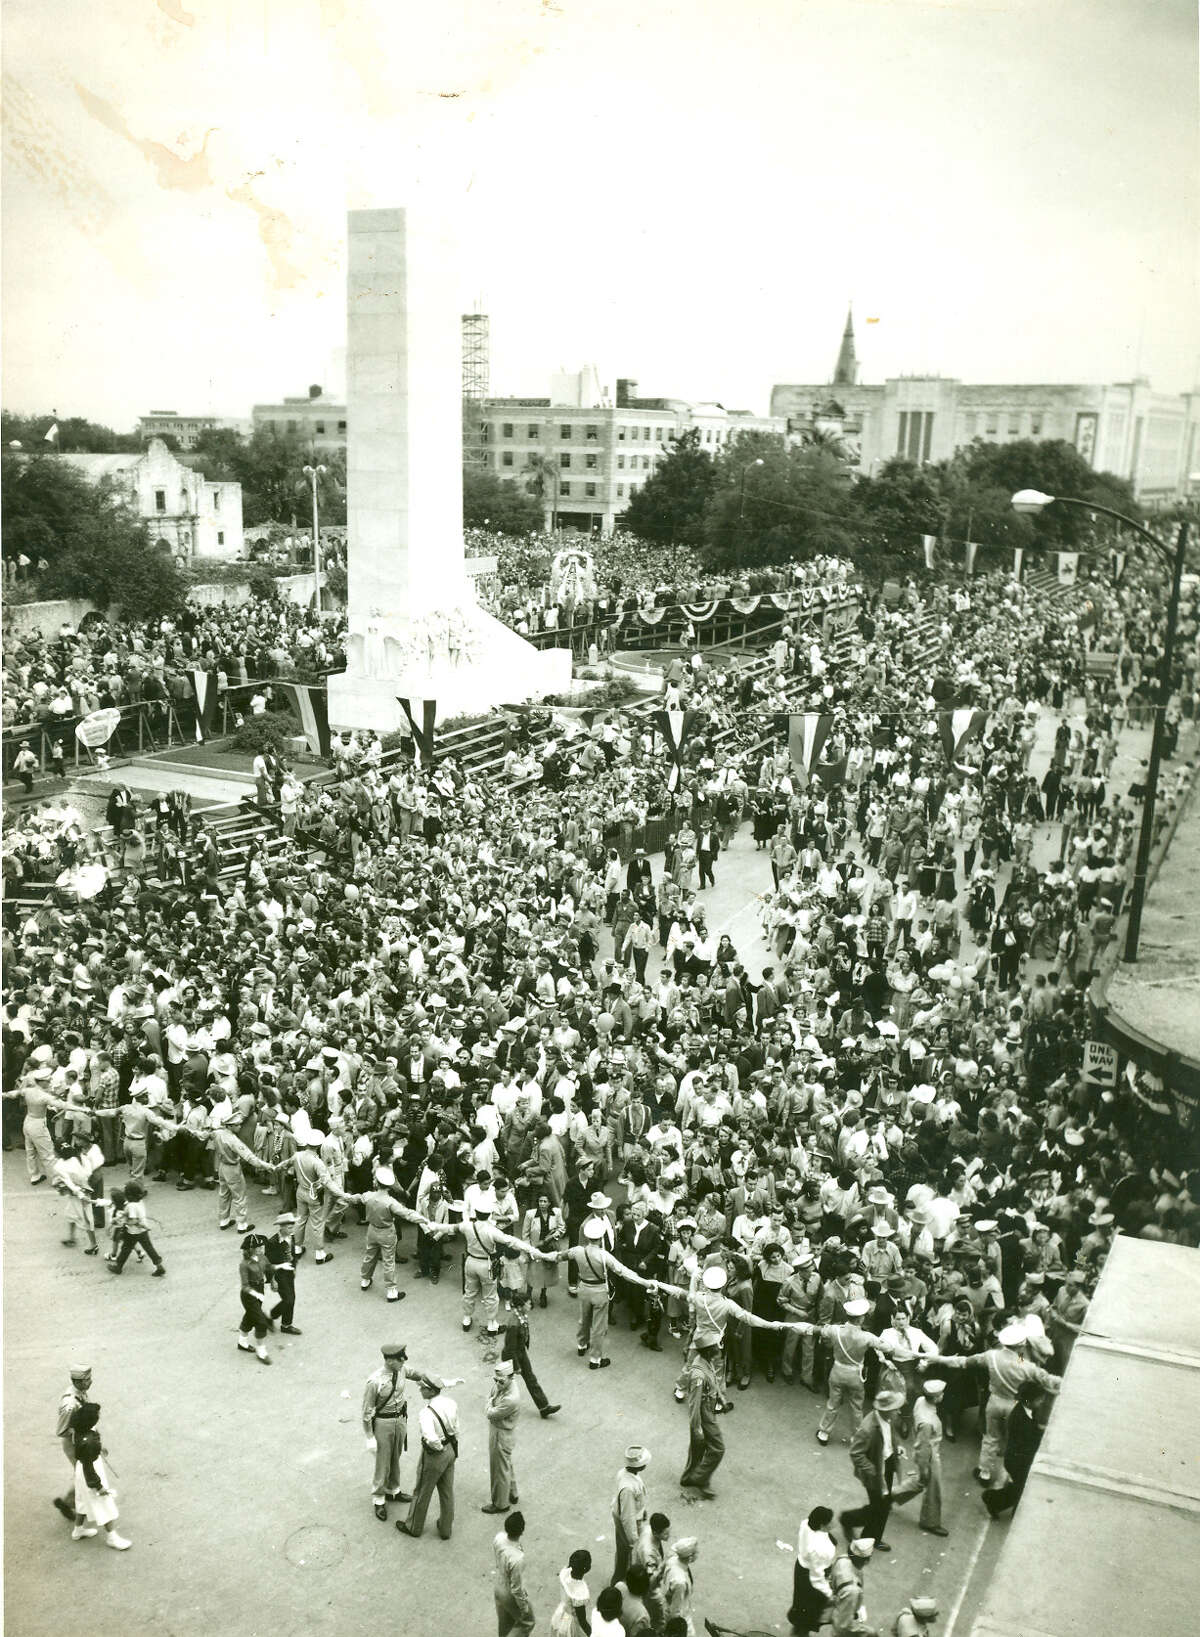 During Fiesta 1950, police engage in crowd control around the Alamo Cenotaph after a parade.